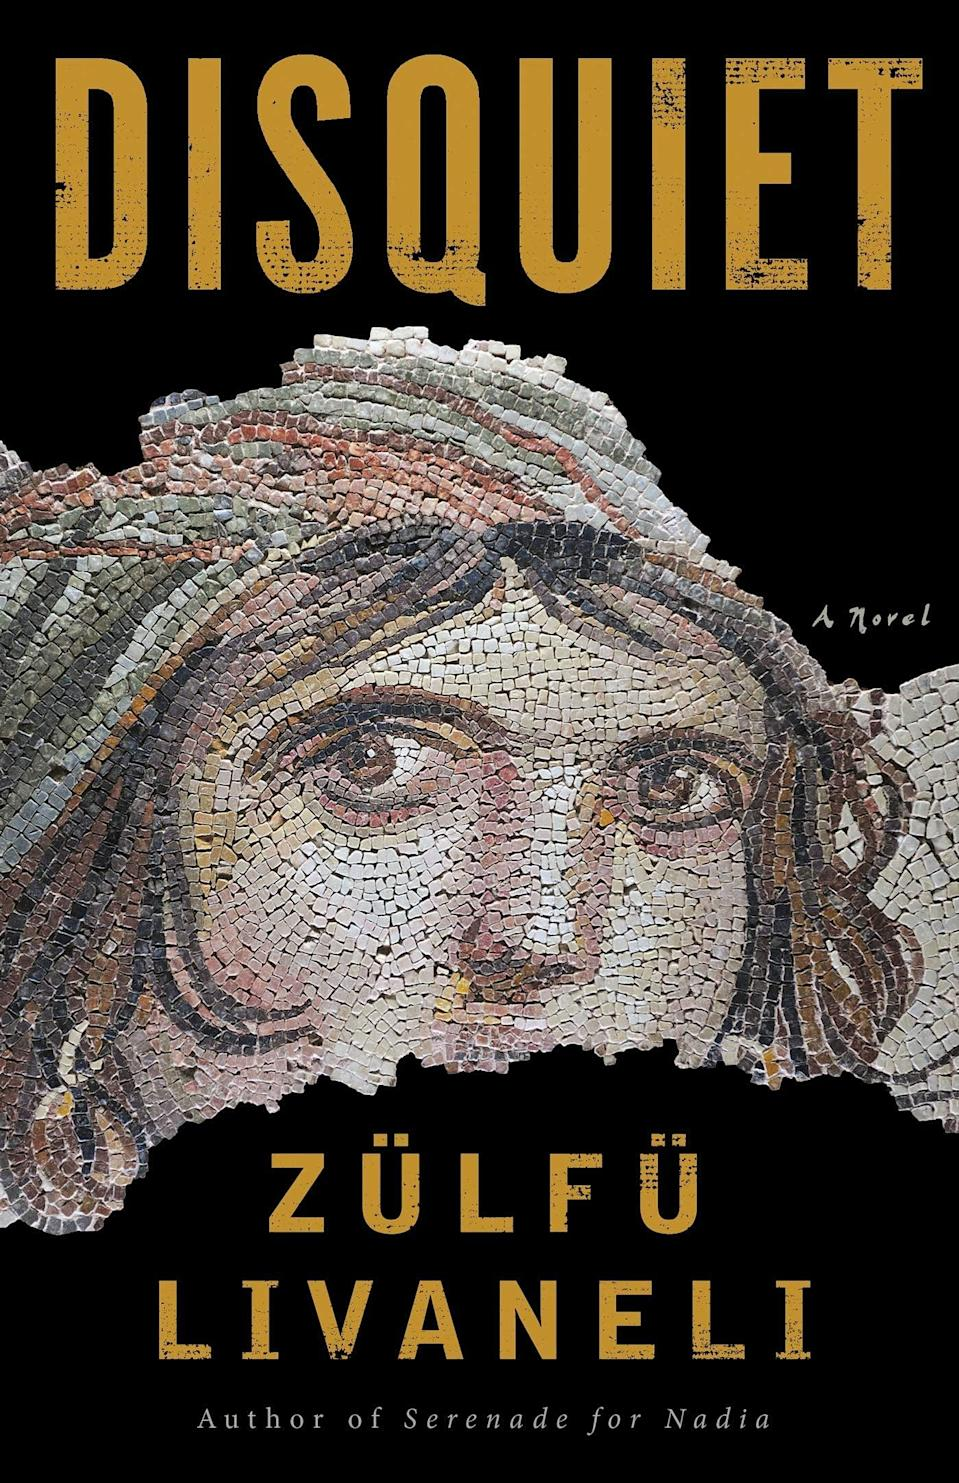 <p><span><strong>Disquiet</strong></span> by Zülfü Livaneli is a moving novel set entirely in the modern day Middle East. The story focuses on Meleknaz, a Yazidi Syrian refugee, and Hussein, whose passion for helping others leads to him falling in love with Meleknaz, much to his family's disapproval. </p> <p><em>Out June 29</em></p>